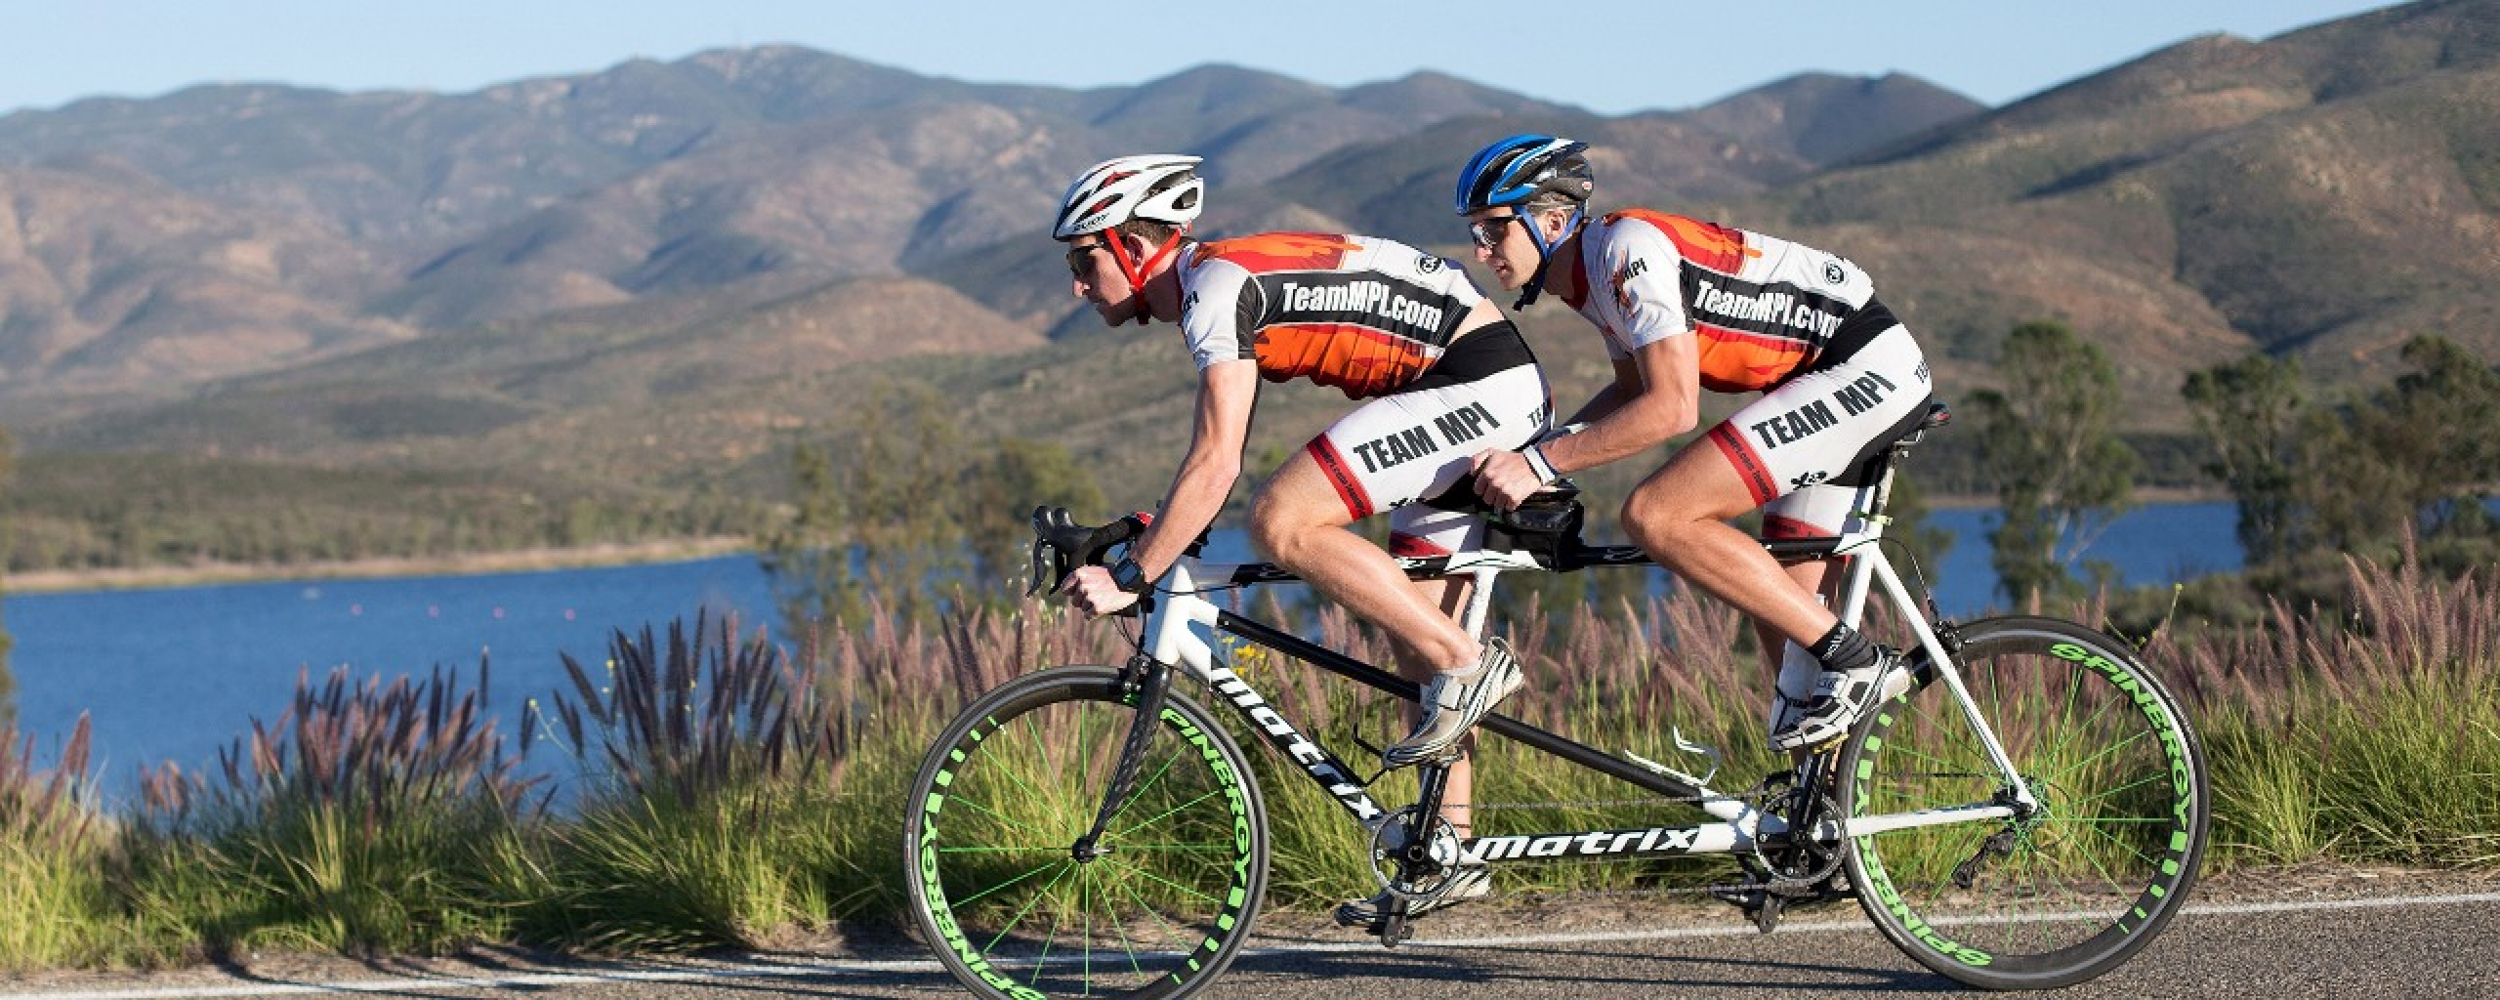 Colin Riley and Aaron Sheidies ride a tandem bike through the mountains of Chula Vista, Calif. photo/Marcy Browe